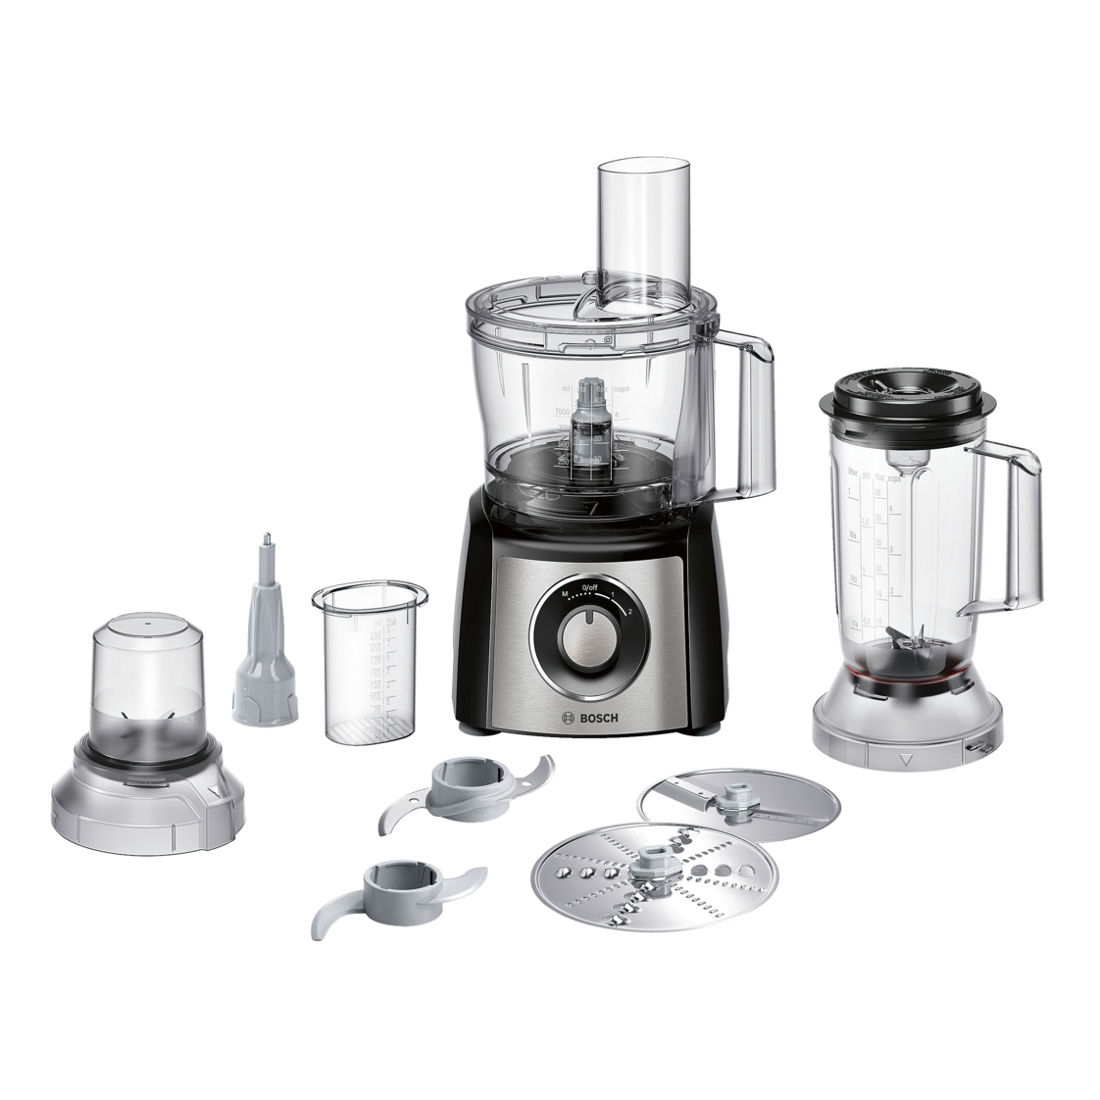 bosch mcm3501mgb food processor with 800w motor and attachments stainless steel ebay. Black Bedroom Furniture Sets. Home Design Ideas